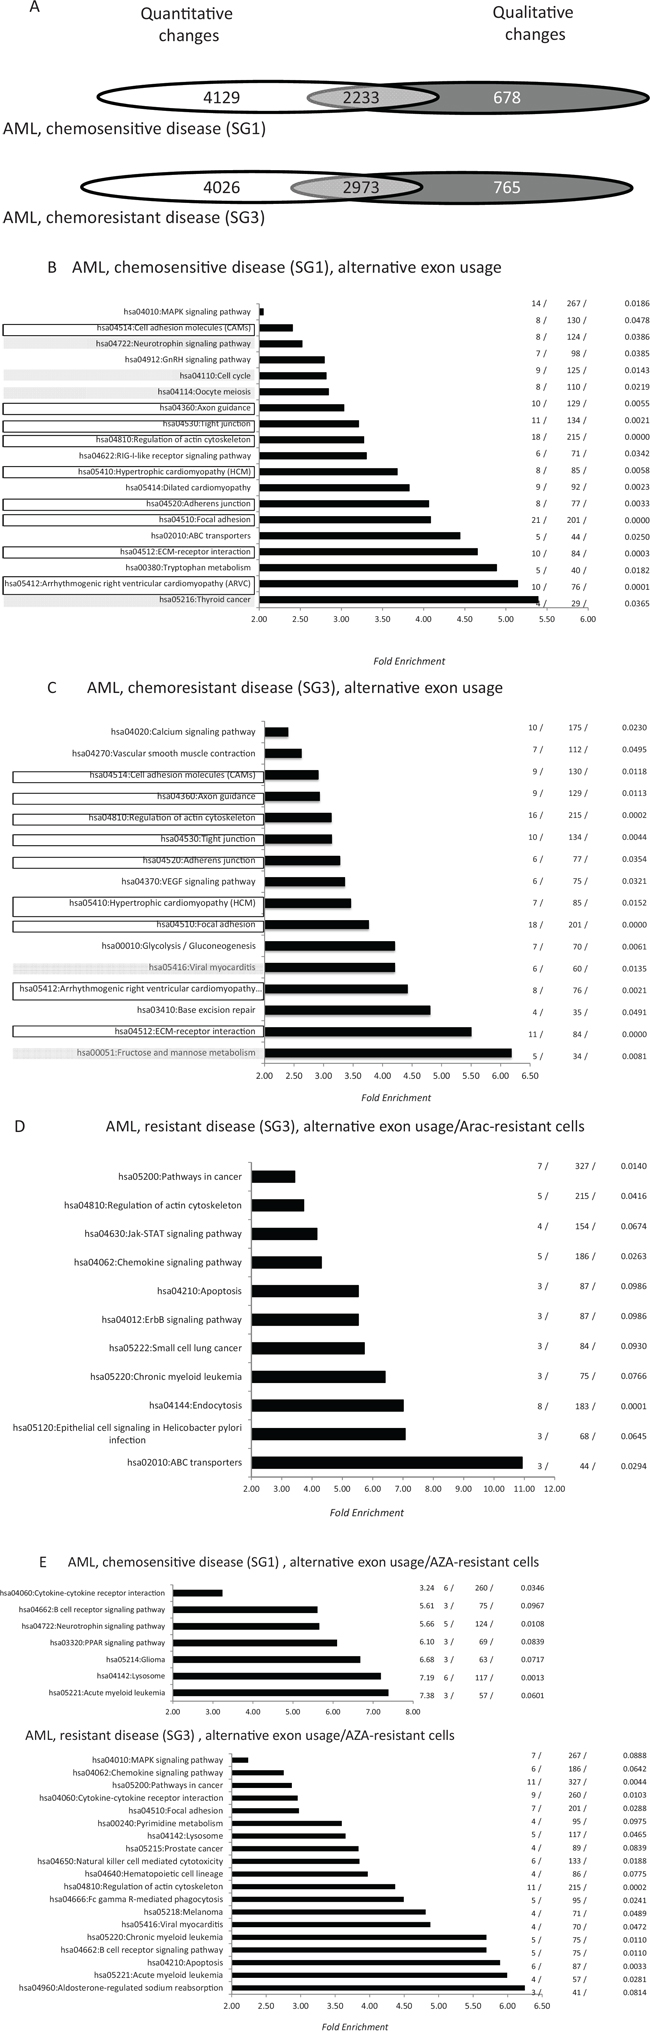 Distribution of alternative exon usages in fresh AML samples derived from patients with chemosensitive (SG1) and chemoresistant (SG3) disease.